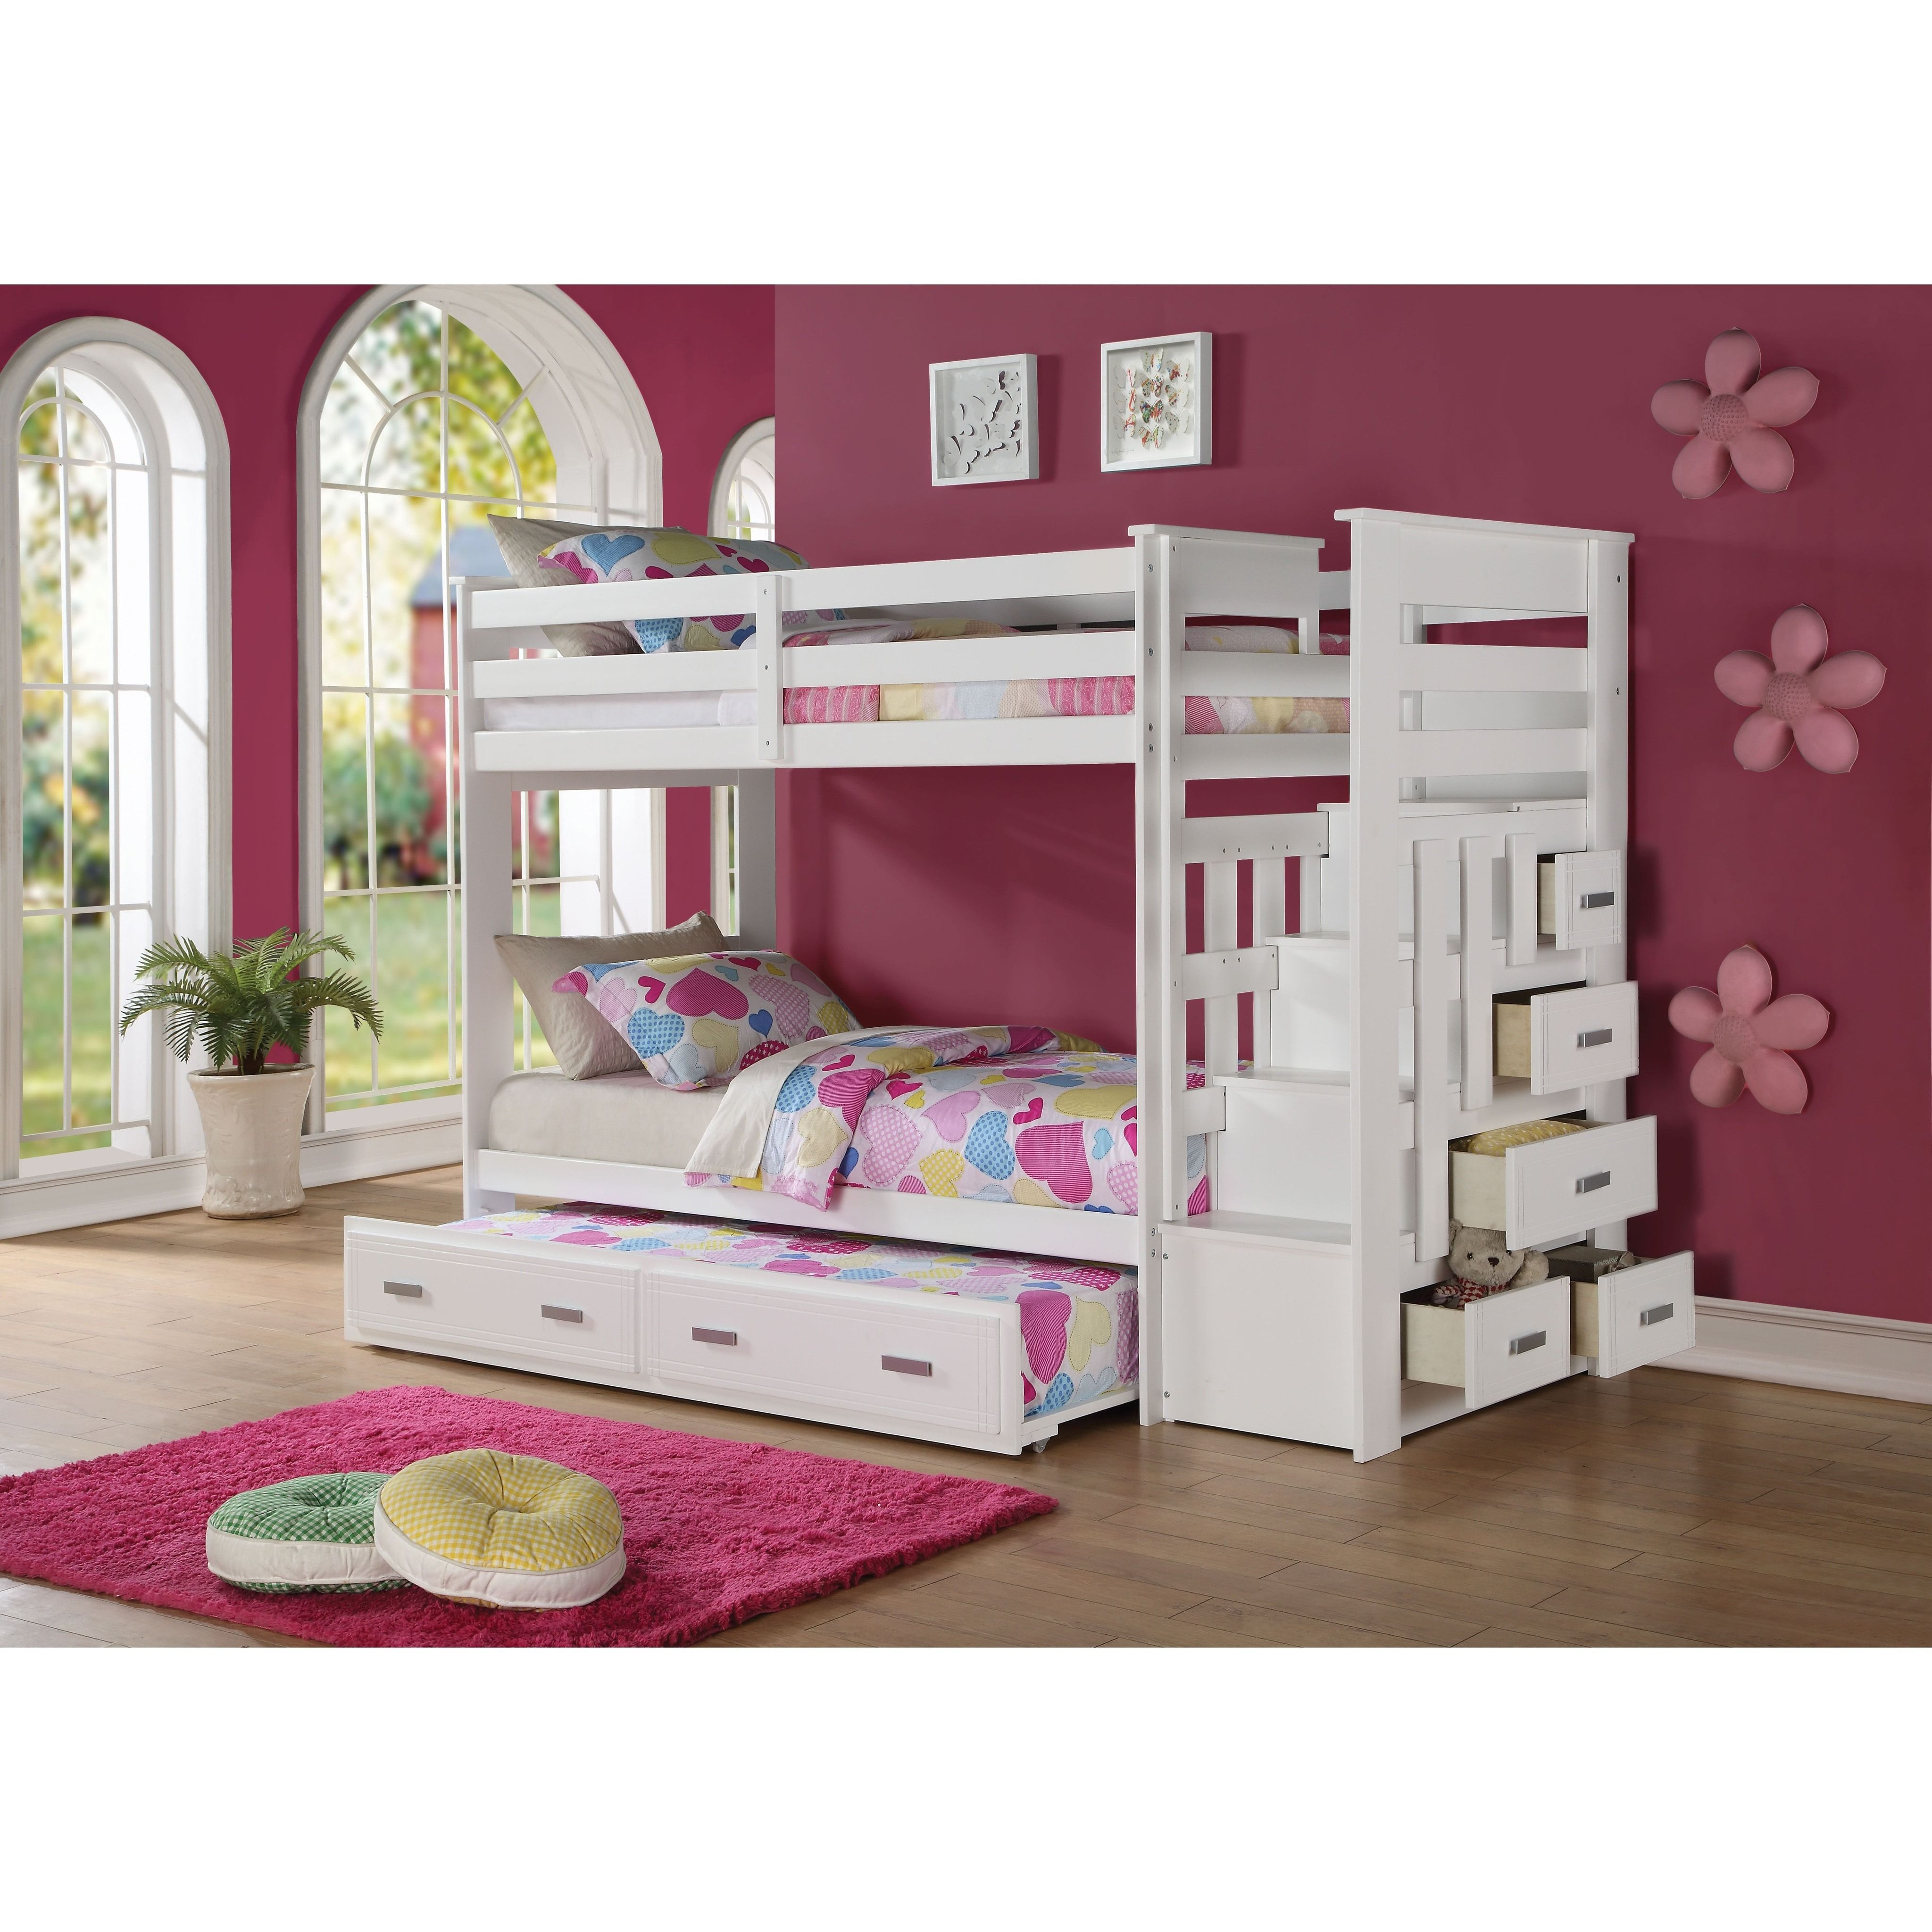 Allentown White Twin over Twin Bunk Bed